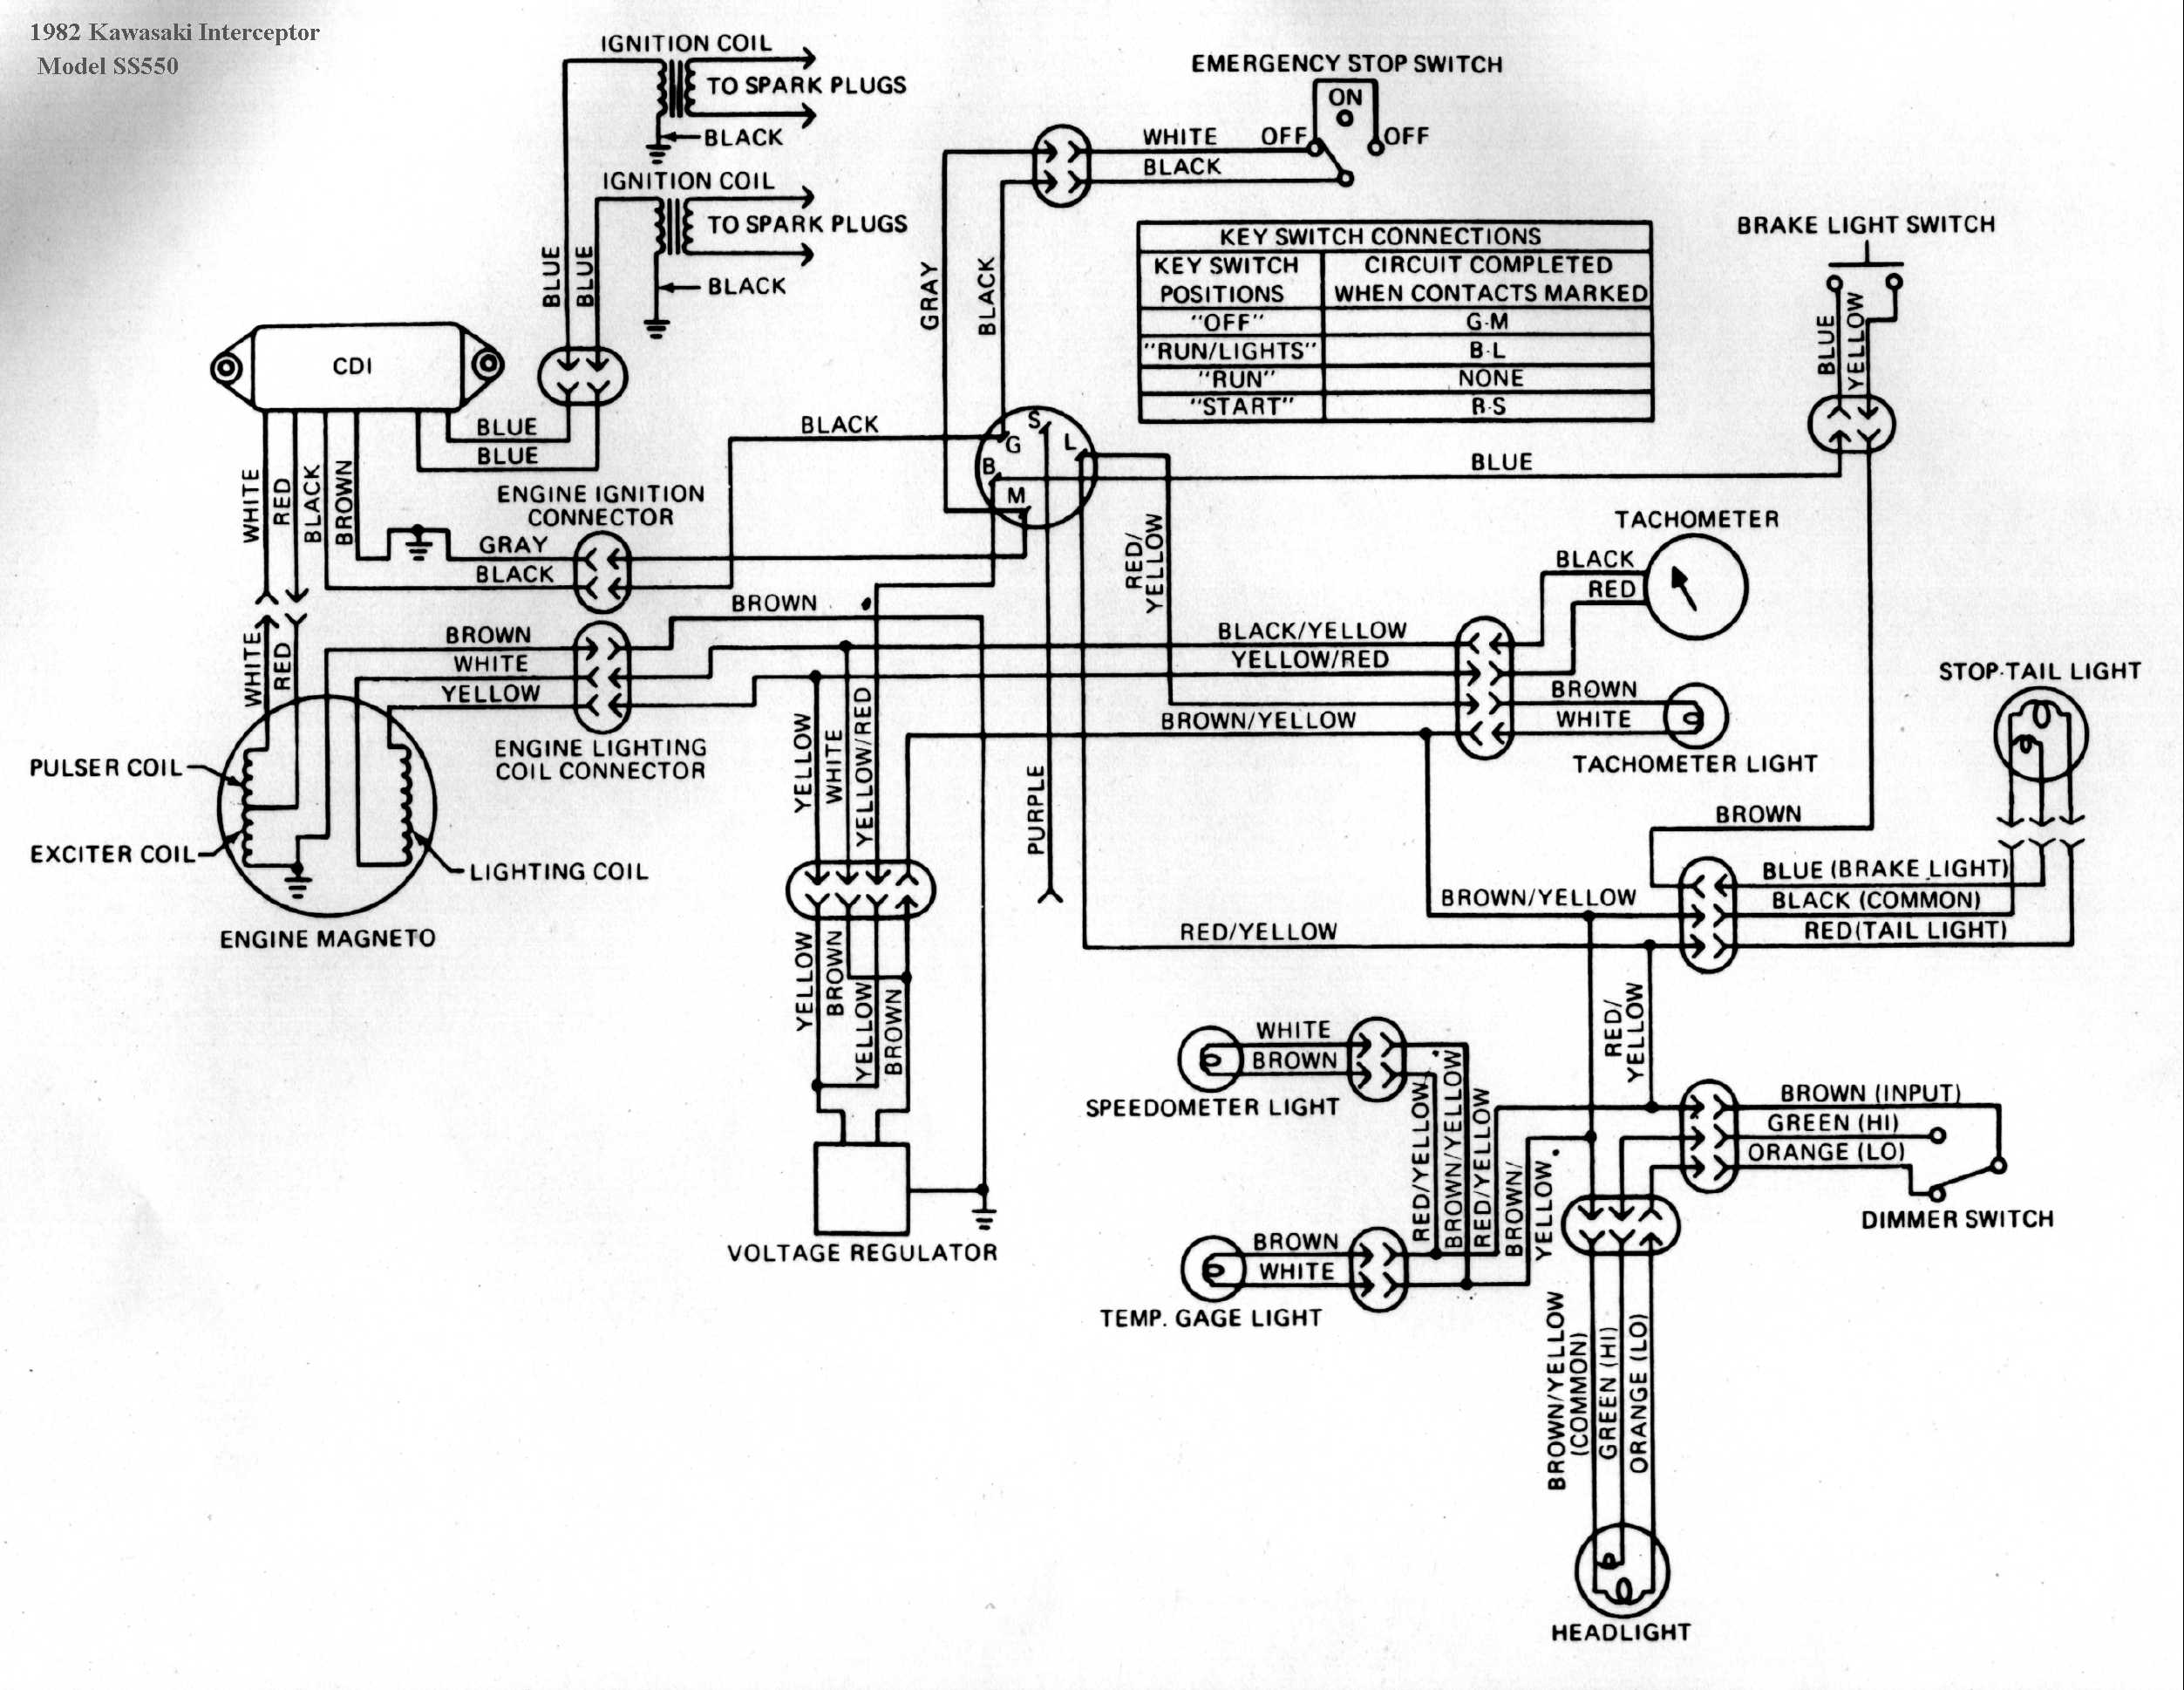 1980 Kawasaki Ltd 440 Wiring Diagram Simple Wiring Diagram Challenger Wiring  Diagram Case 550 Wiring Diagram